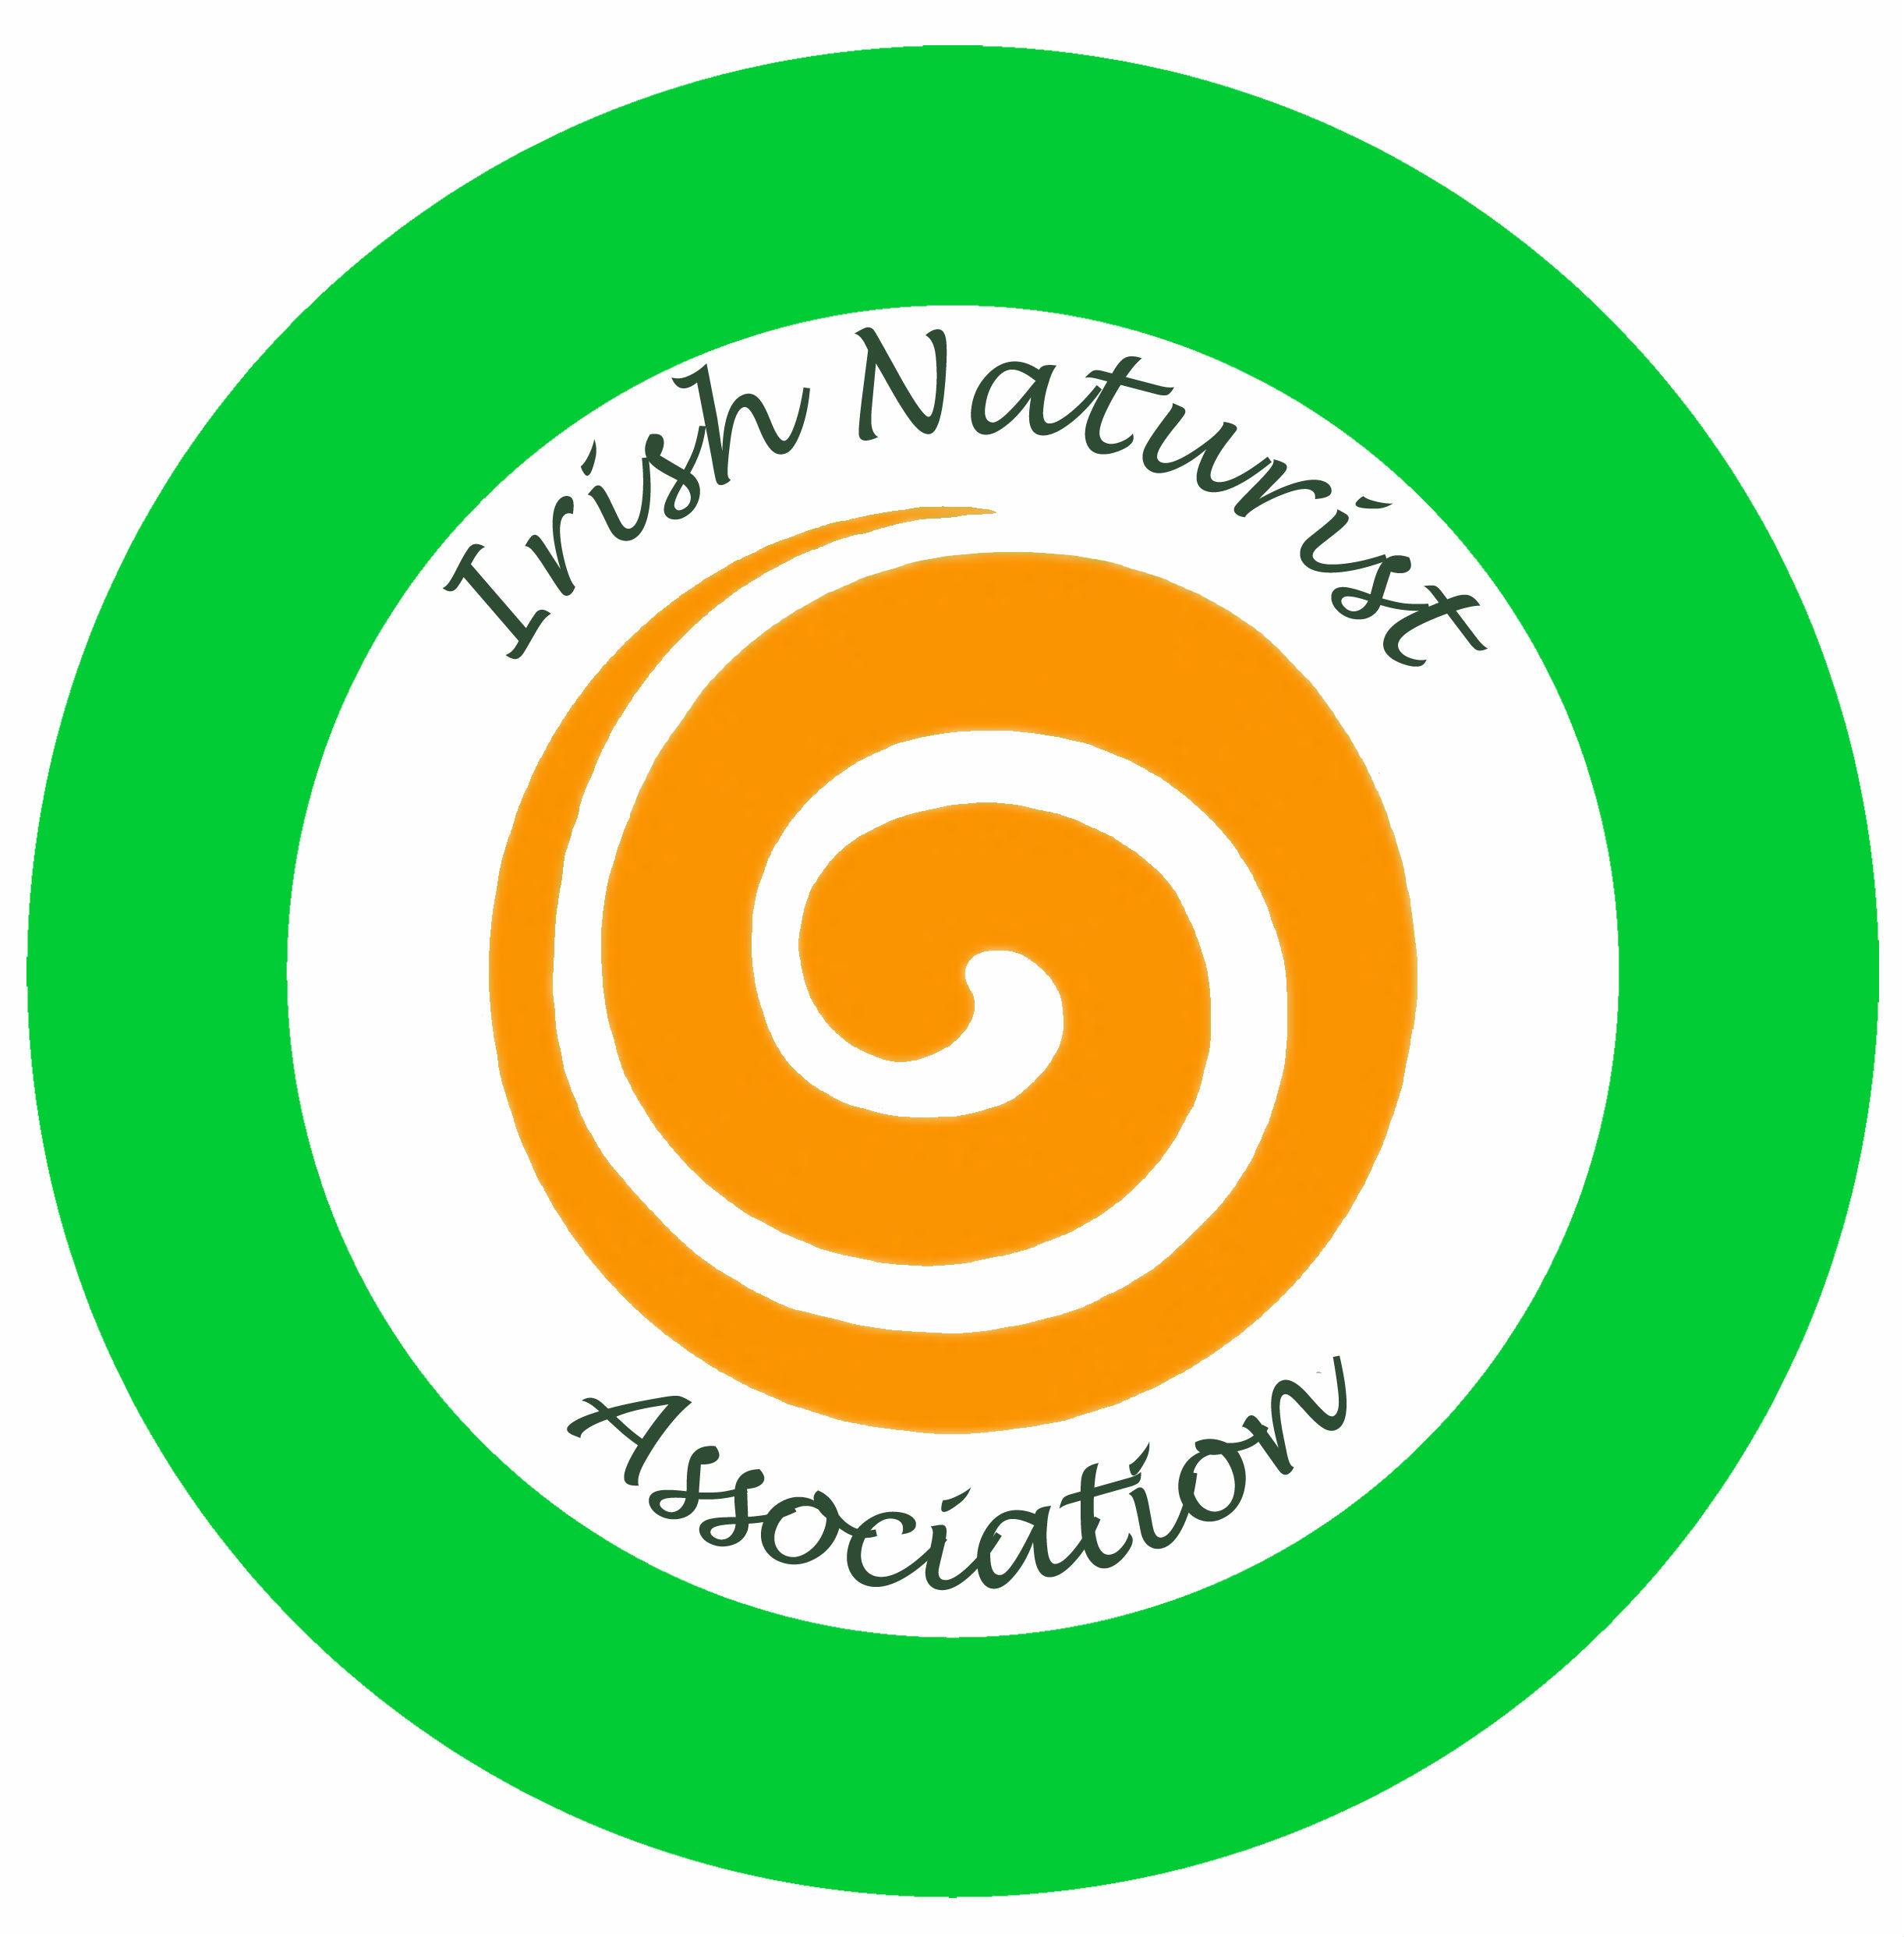 ina-irish-naturist-association